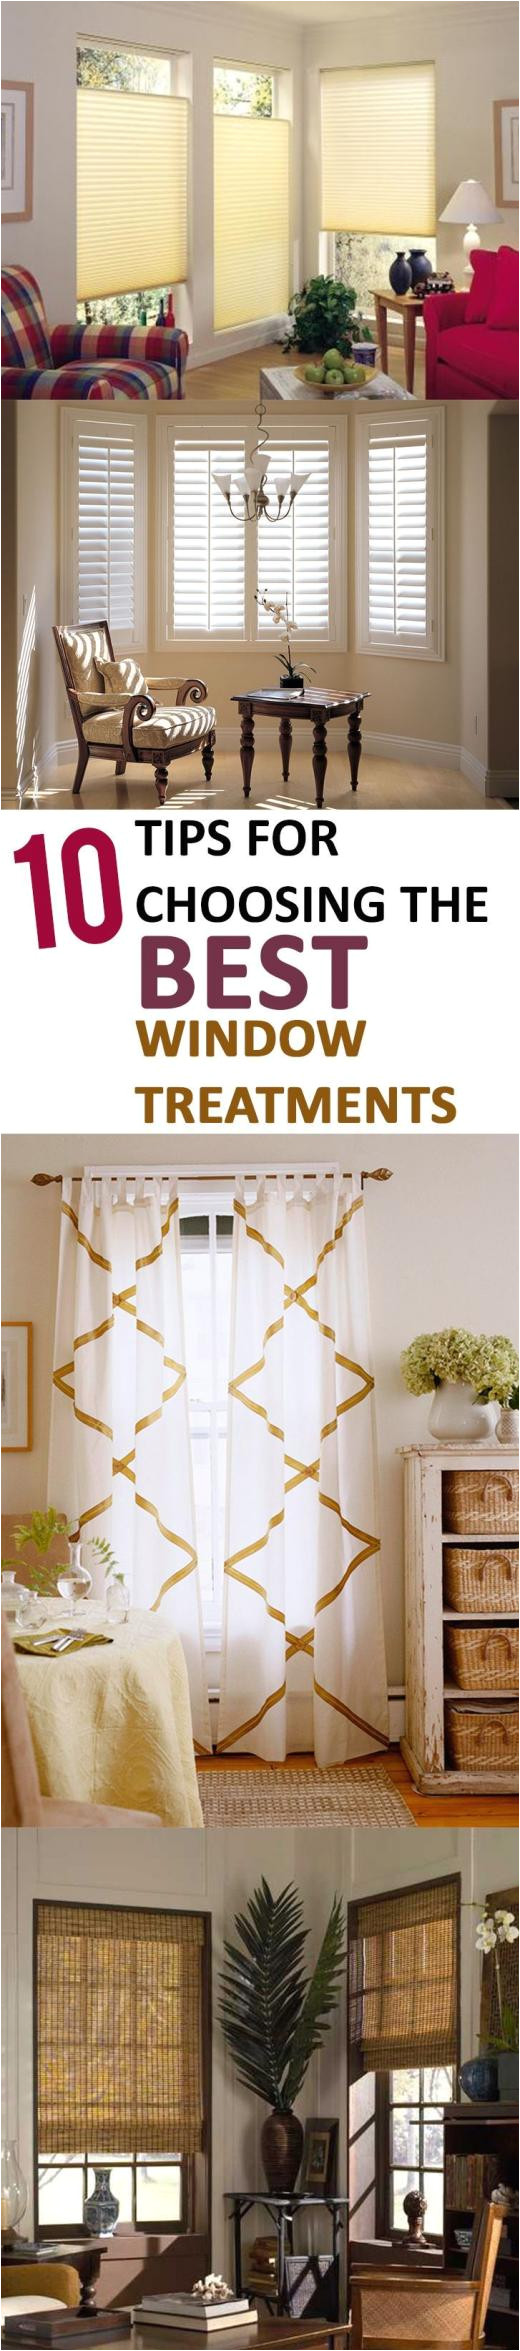 drapery and blinds software 56 wonderfully images of 8 best building decoration images on pinterest of